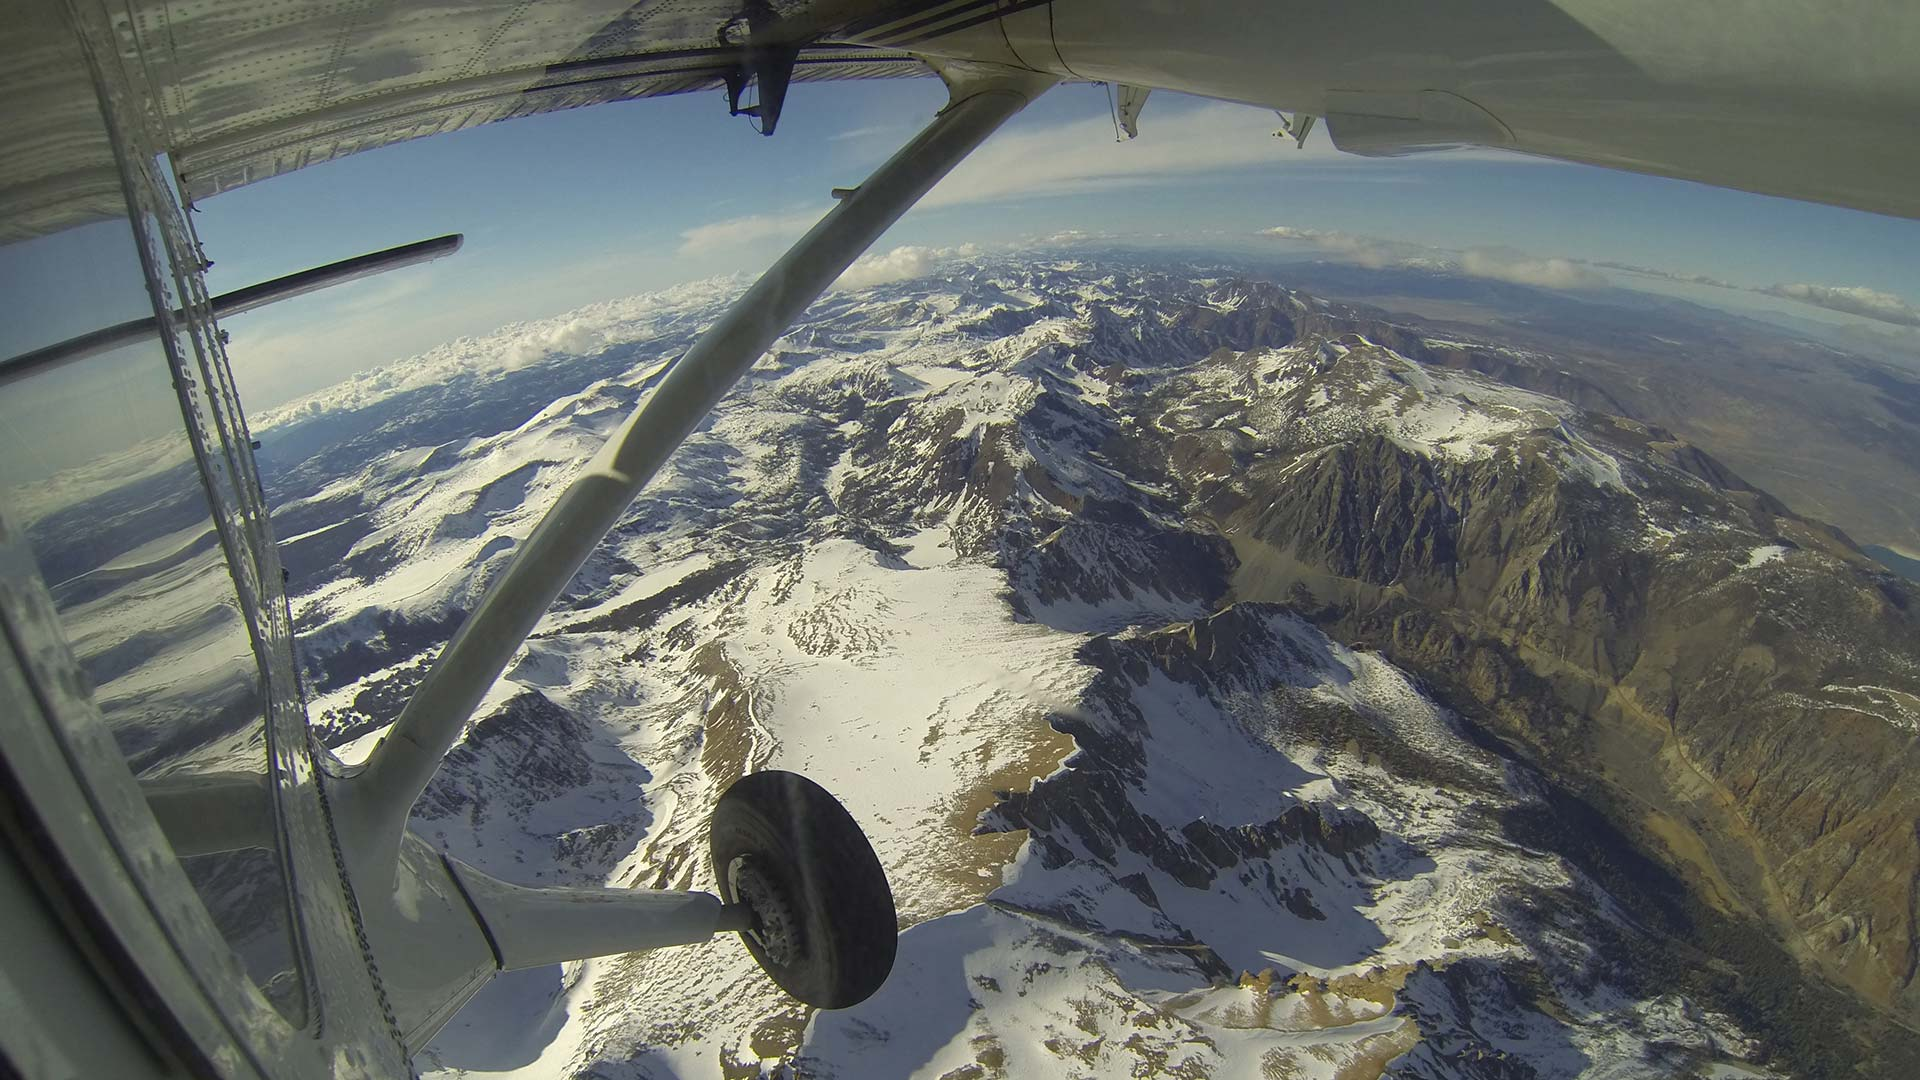 Above Yosemite National Park in California, looking out the window of a Twin Otter aircraft carrying NASA's Airborne Snow Observatory on April 3, 2013.